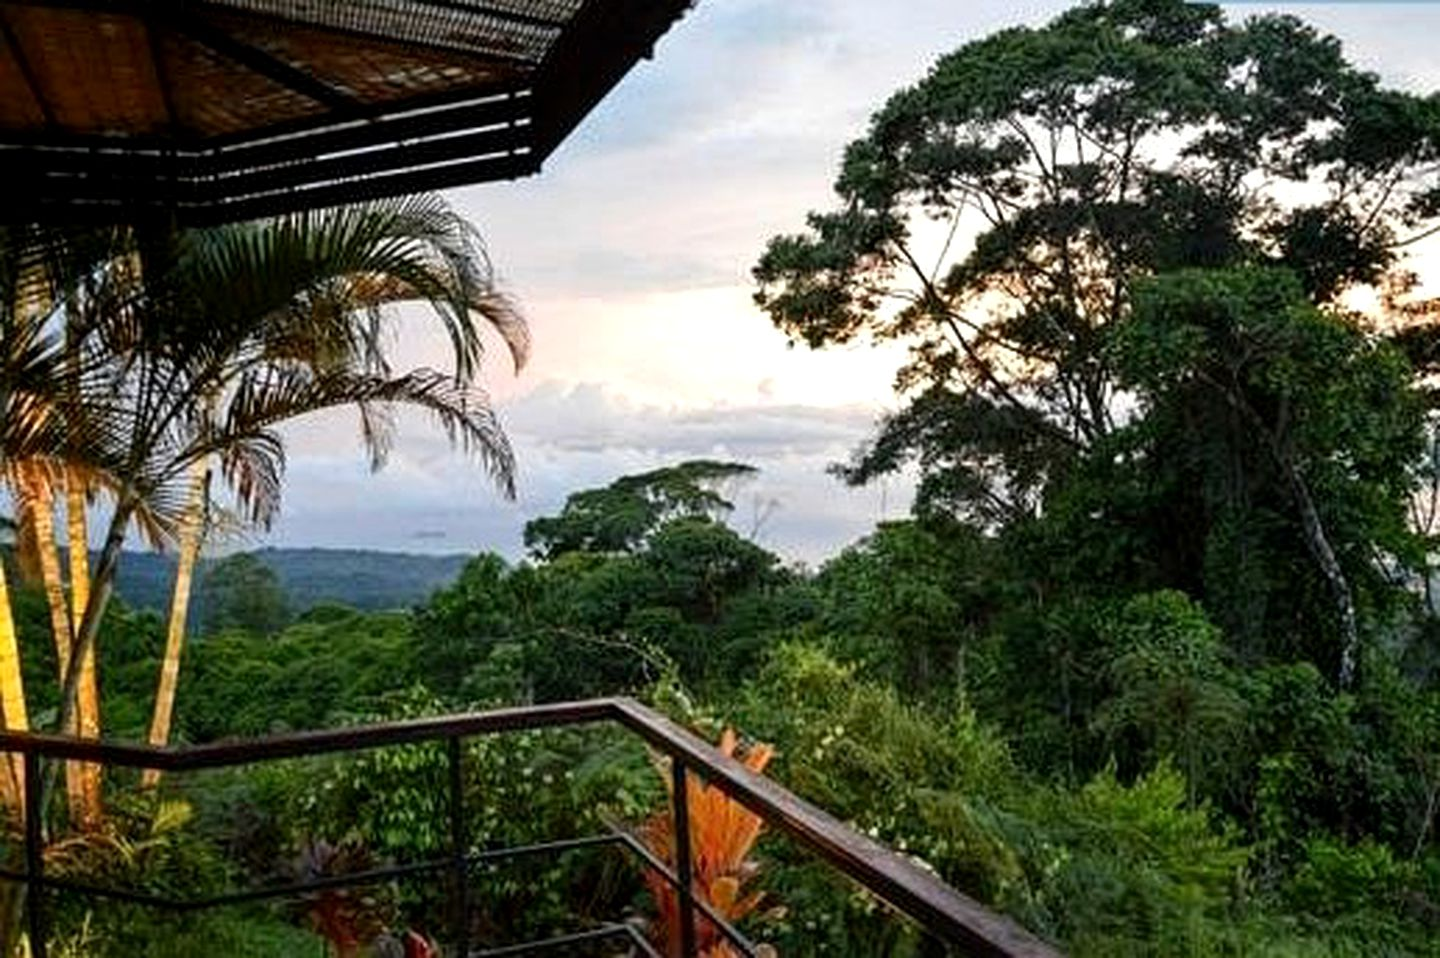 Upscale Tree House Cabin with Infinity Pool, Costa Rica